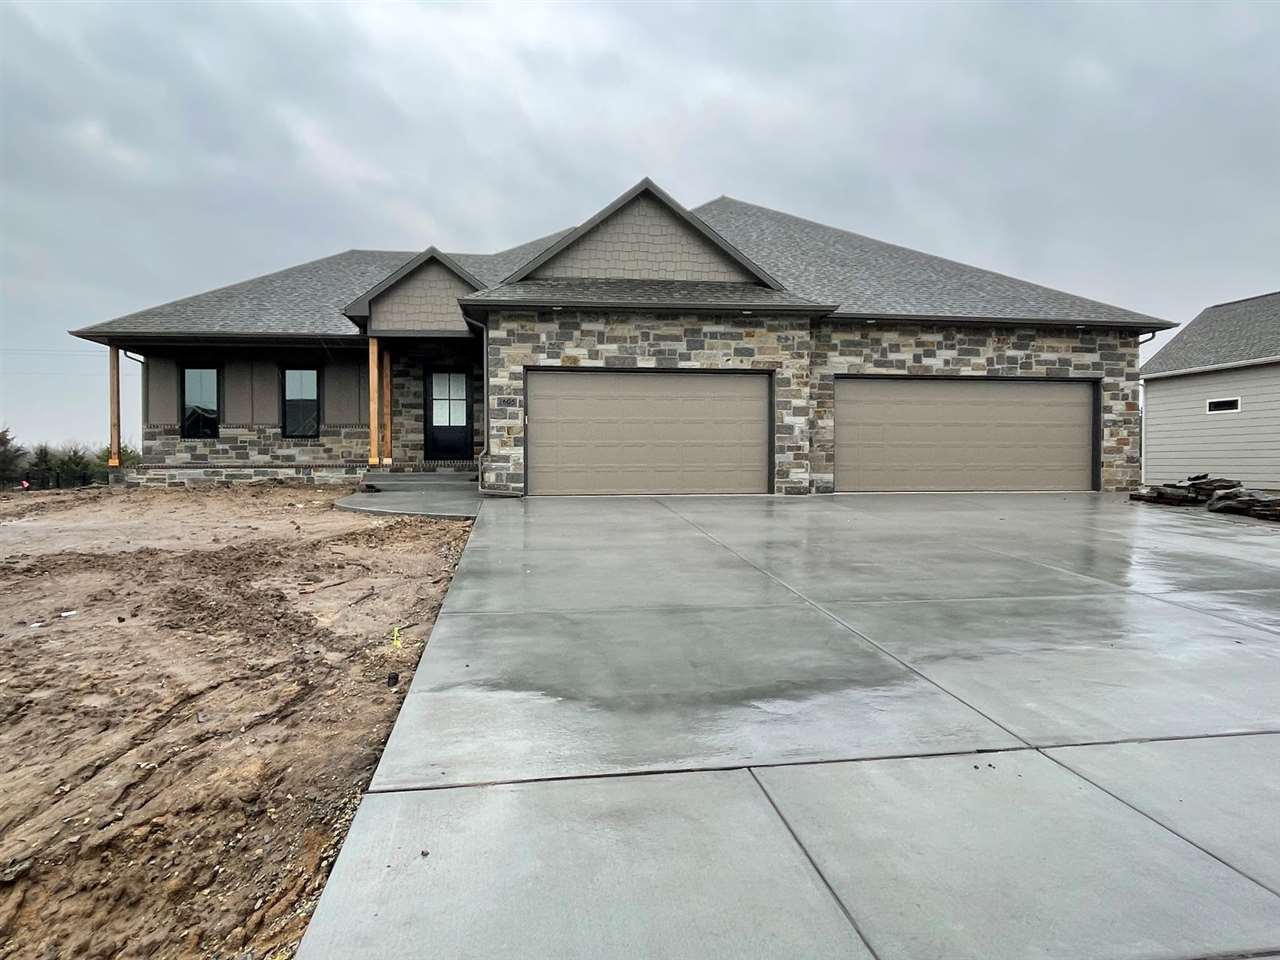 Stunning RJ Castle 4 bedroom, 3 bath home in beautiful Elk Ridge!  This home features a fantastic op